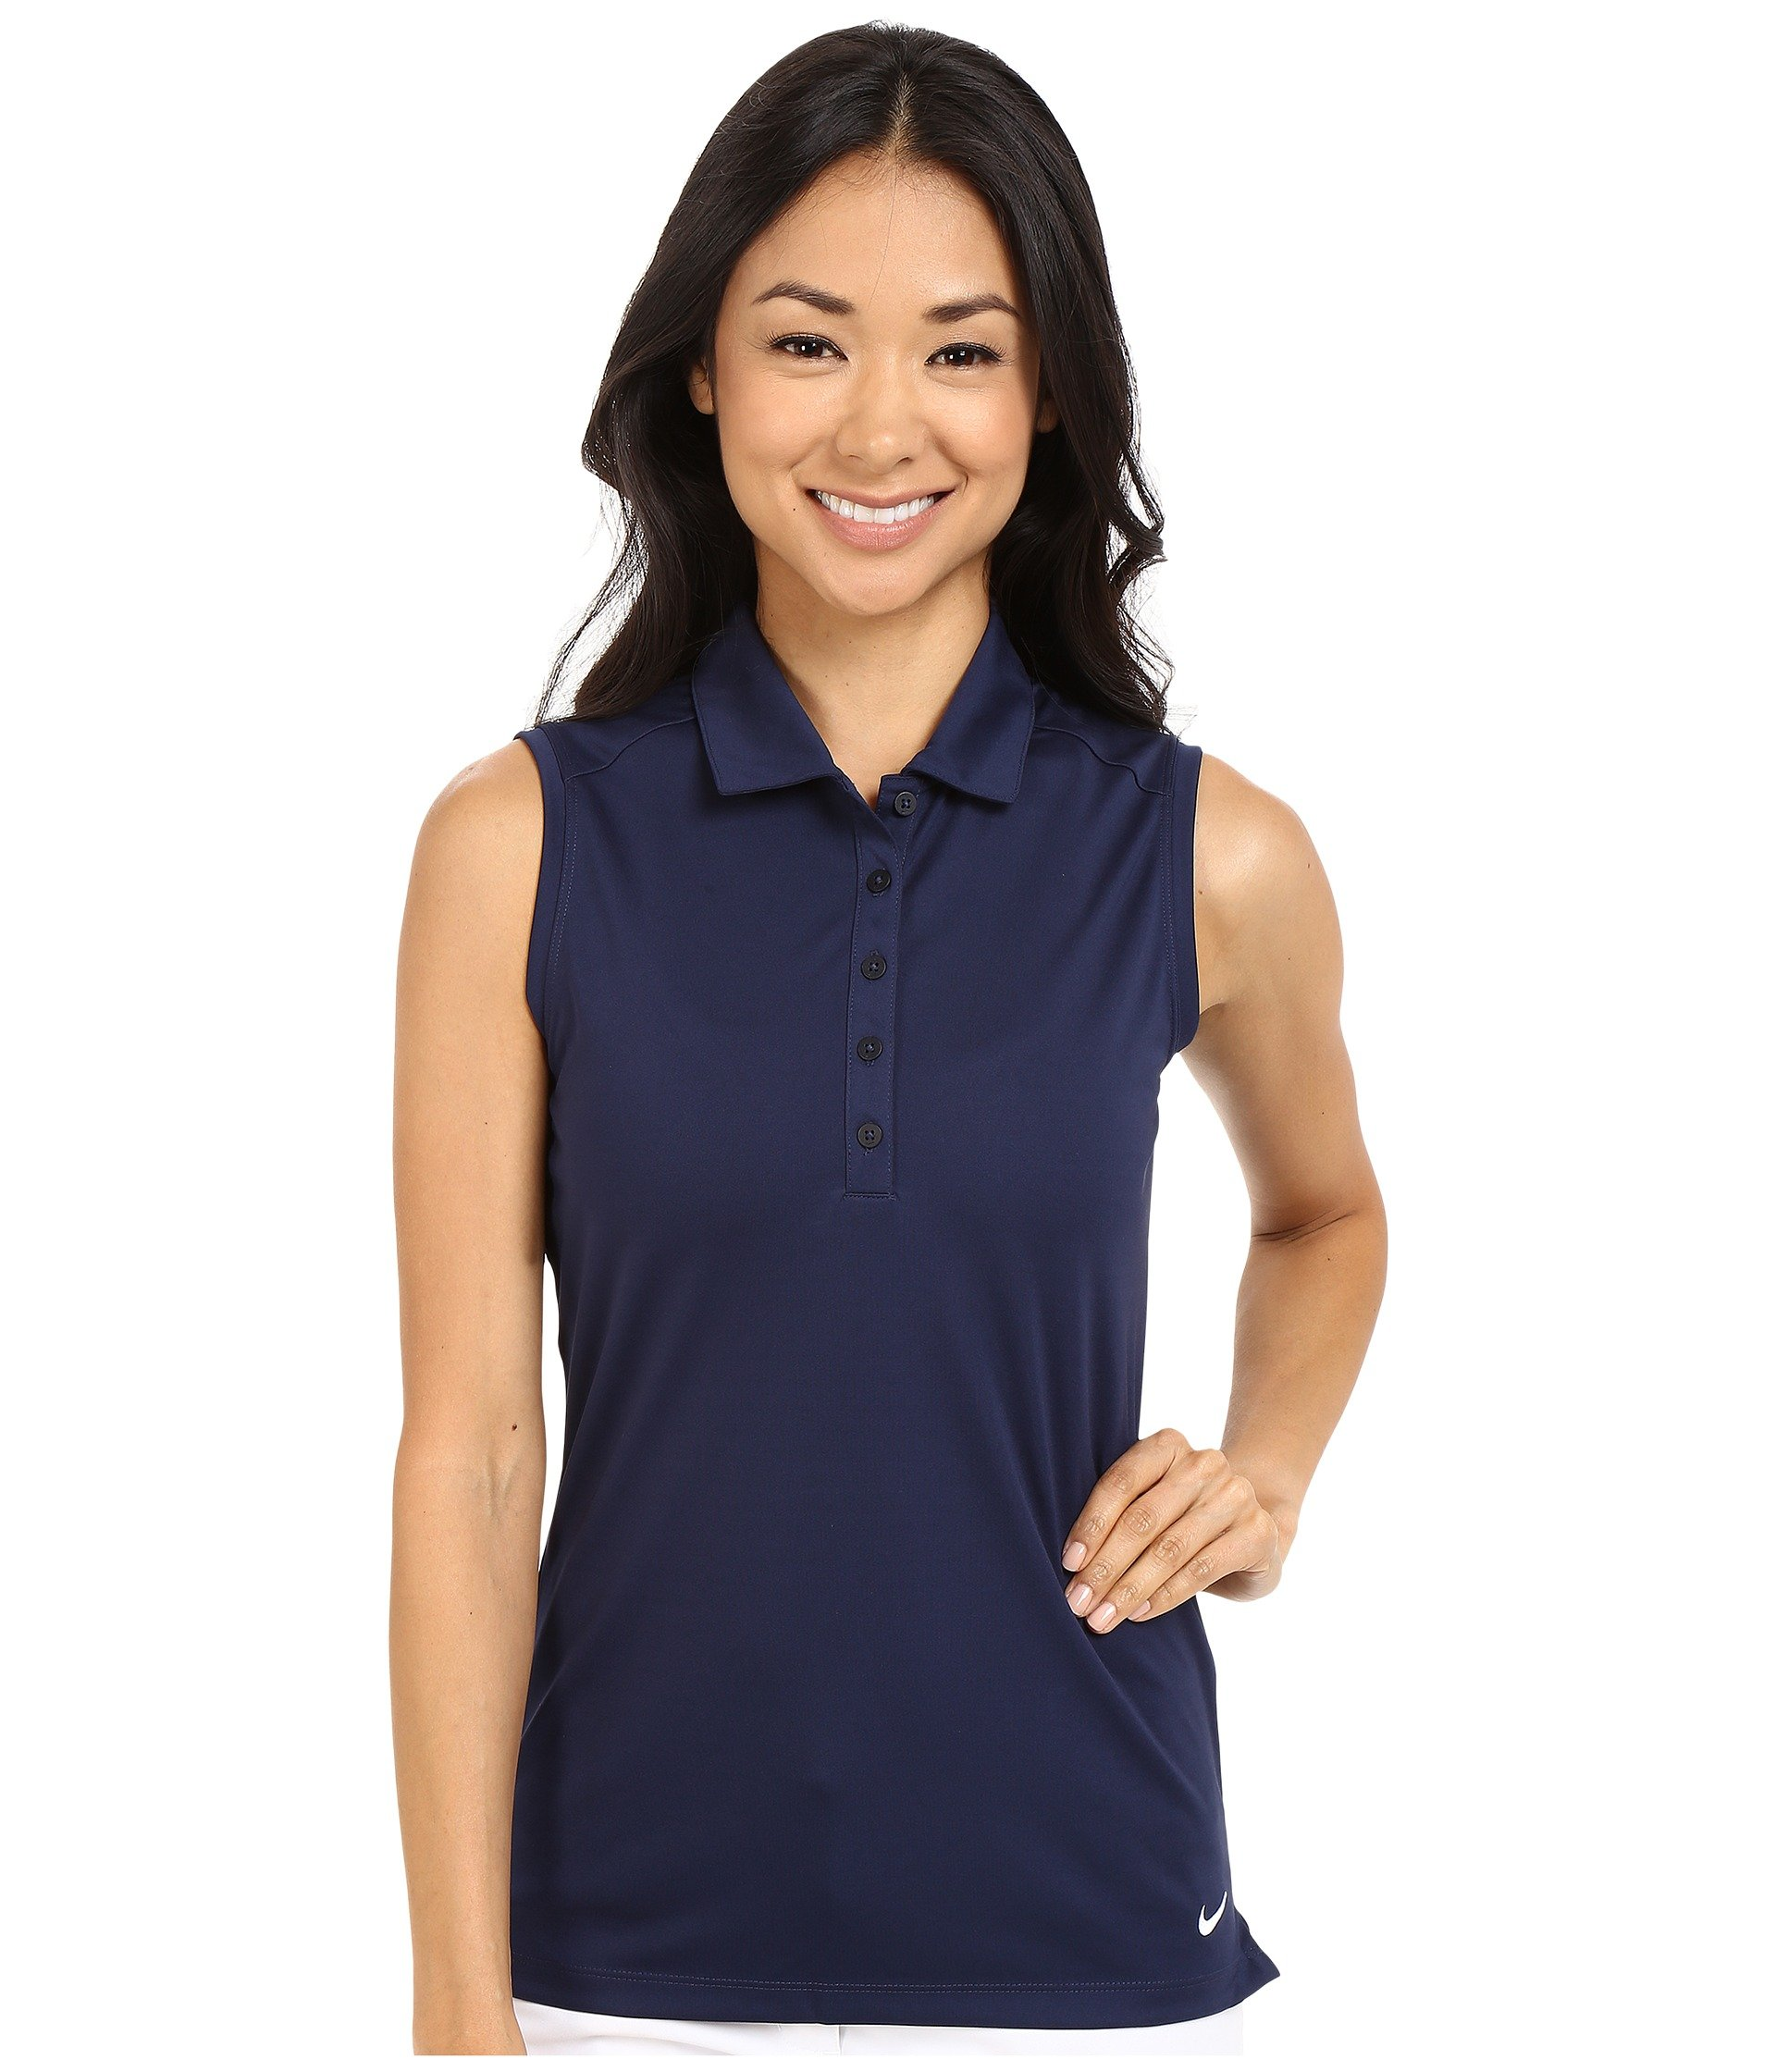 Nike Women's Victory Solid Sleeveless Polo, College Navy/White XS